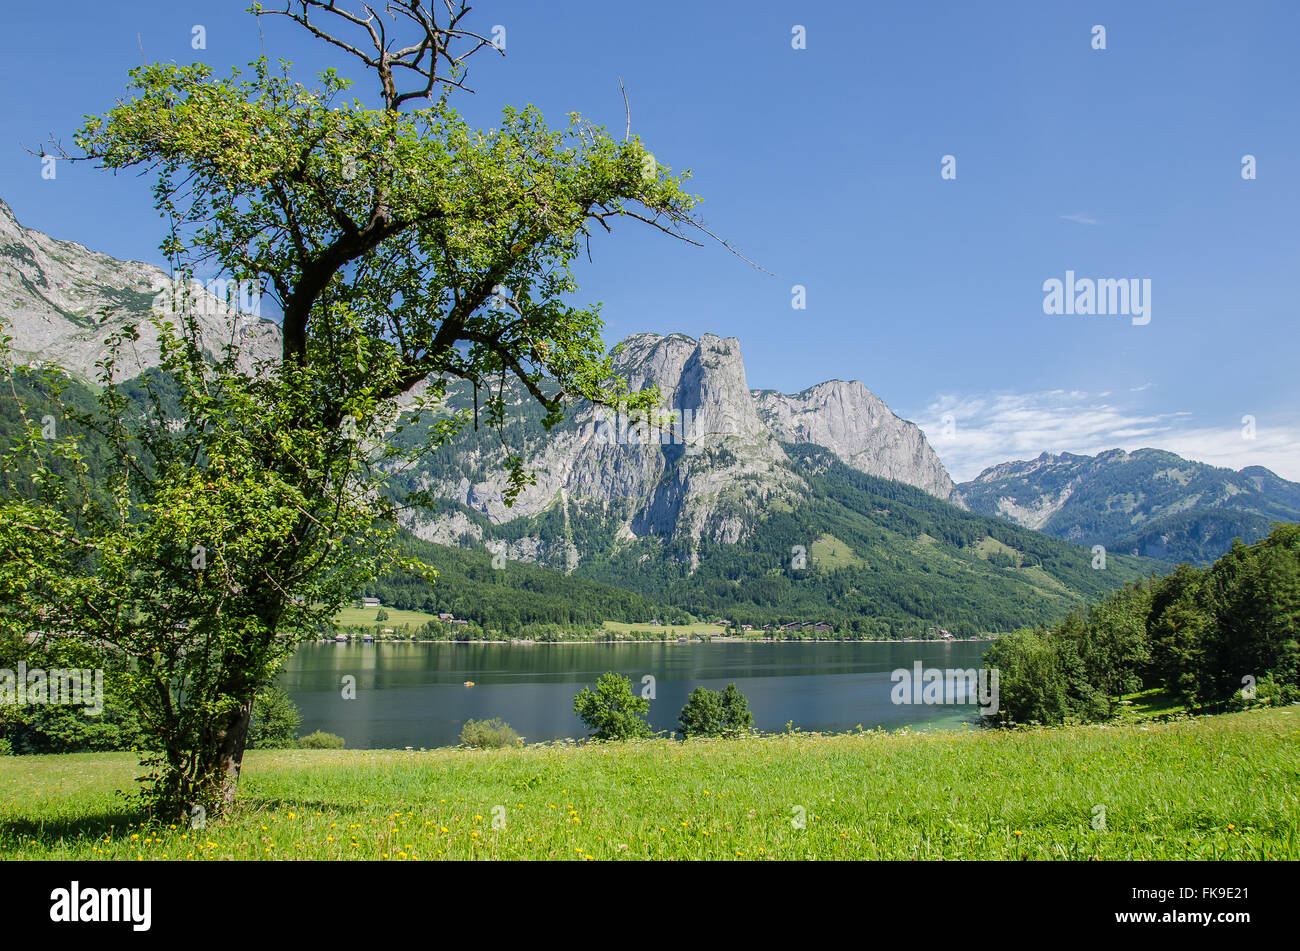 The Grundlsee vacation region is one big natural playground: the Grundlsee invites you to swim and relax. Stock Photo